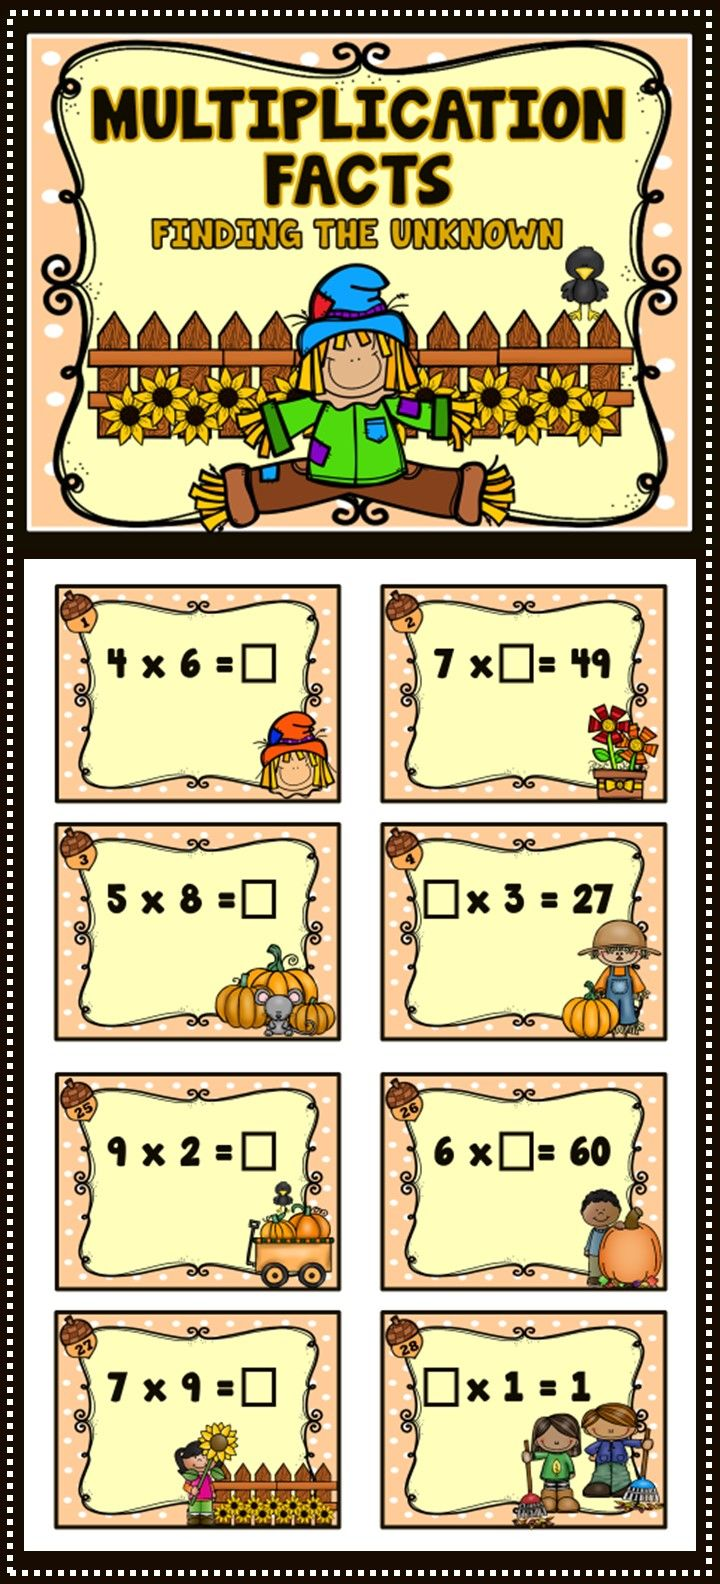 worksheet 60 Multiplication Facts multiplication facts 60 task cards fall themed cards